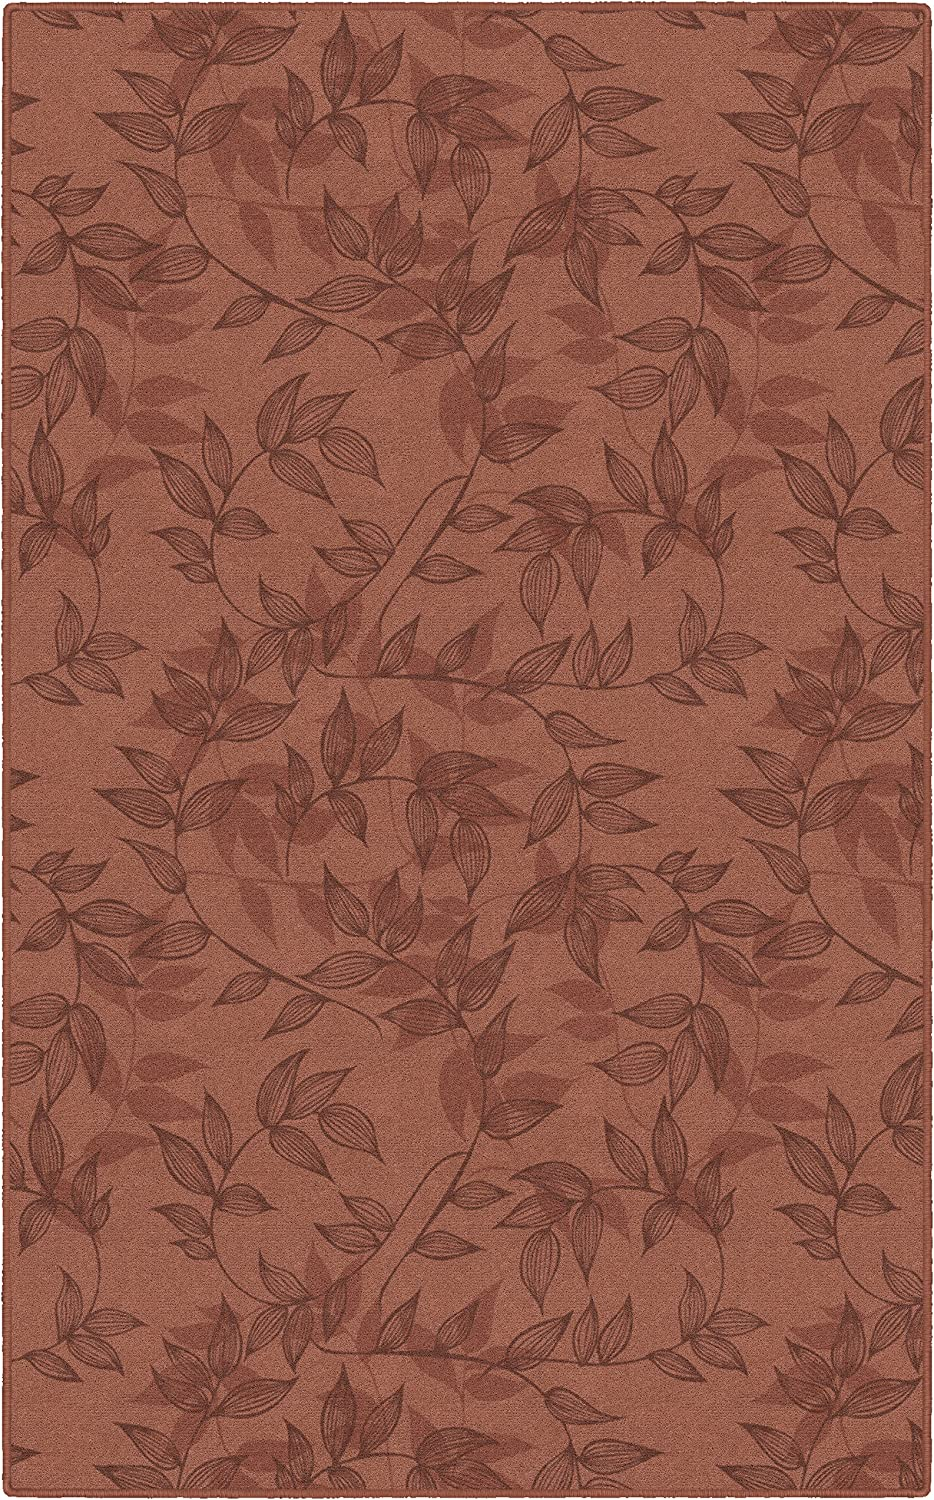 Brumlow Mills Entwined Simple Dealing full Excellent price reduction Floral Home Area with Indoor Rug C